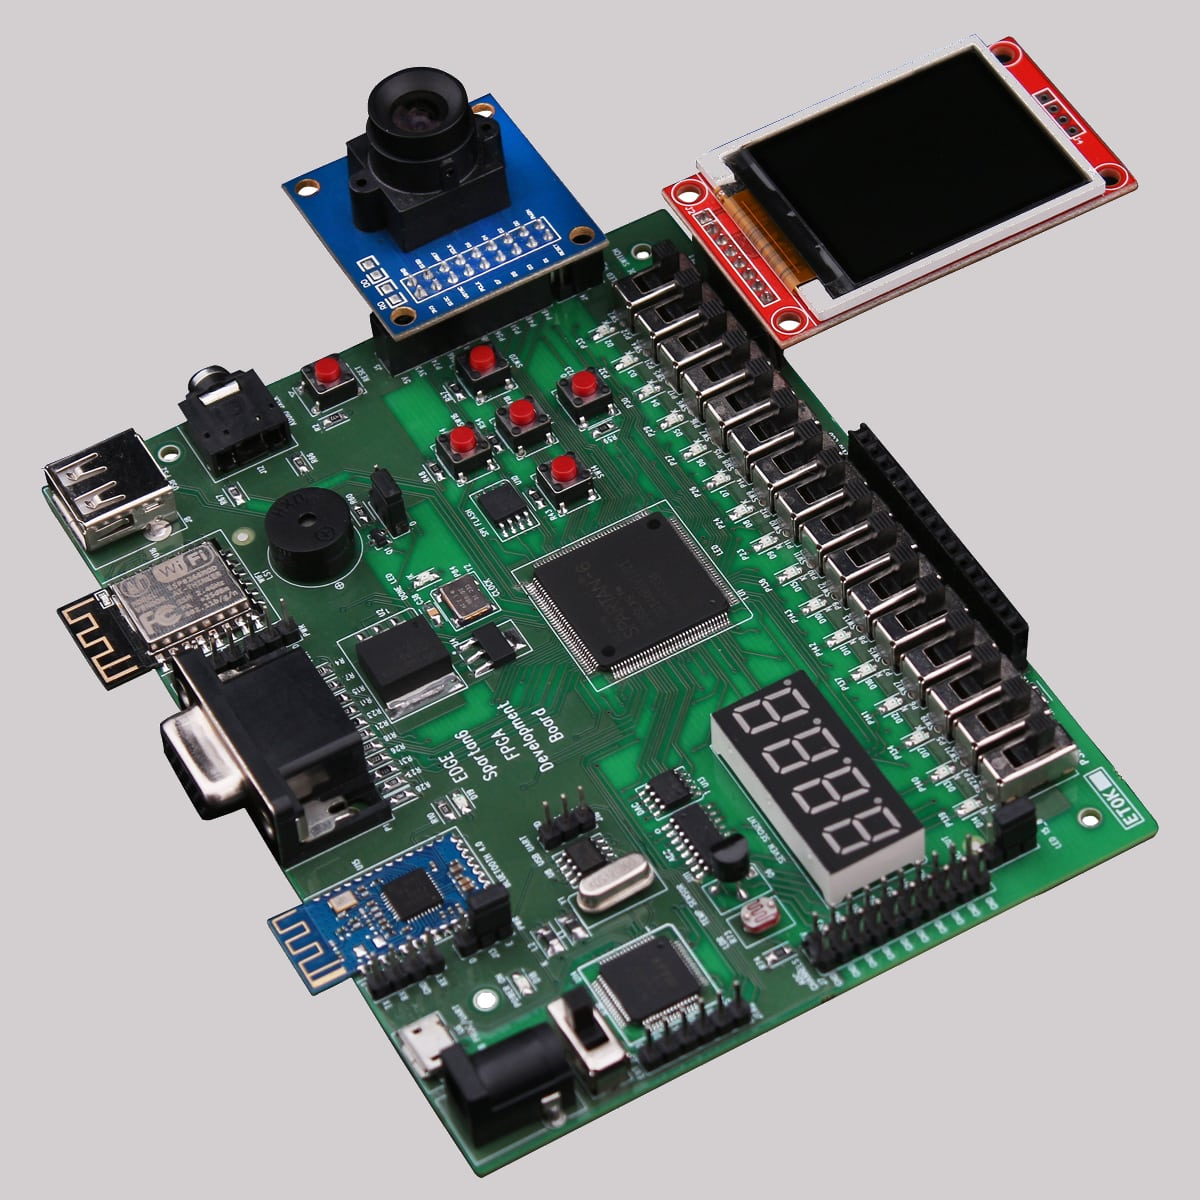 Introducing EDGE Spartan 6 FPGA Development Board!